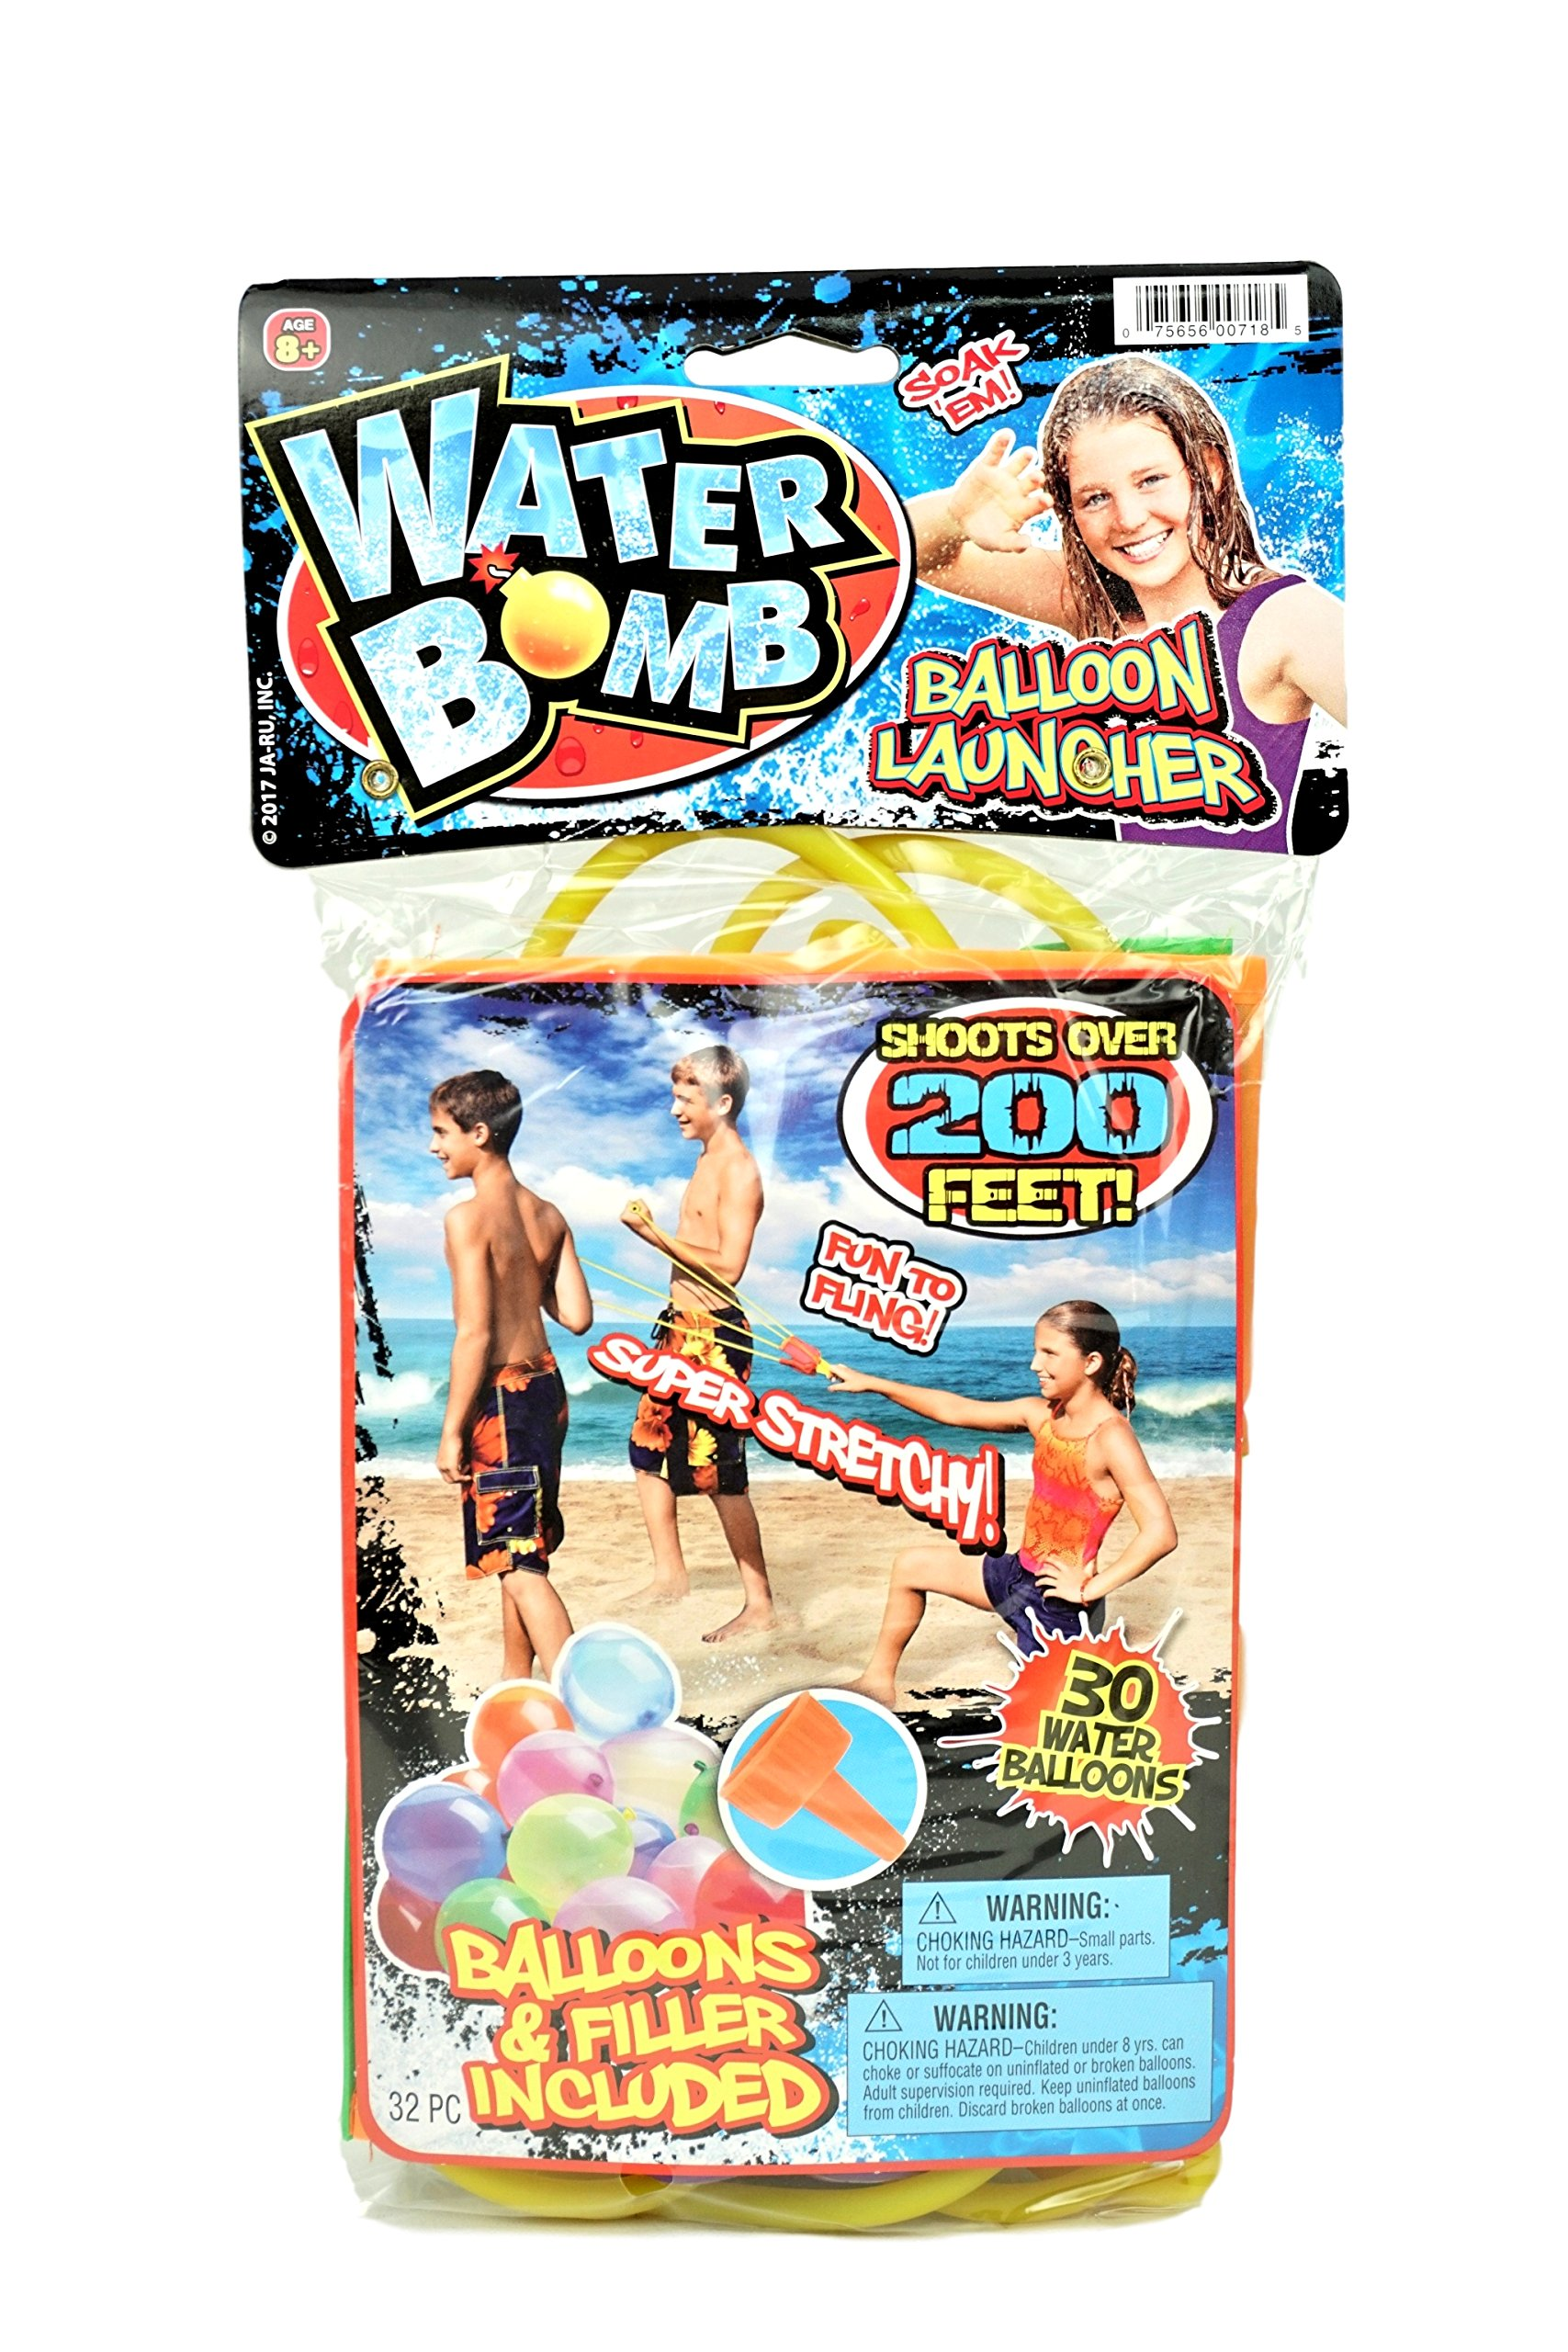 JA-RU Huge Sling Water Balloon Launcher + 30 Balloons (Pack of 6) Filler Included. Super Stretch | Item # 718-6 by JA-RU (Image #2)